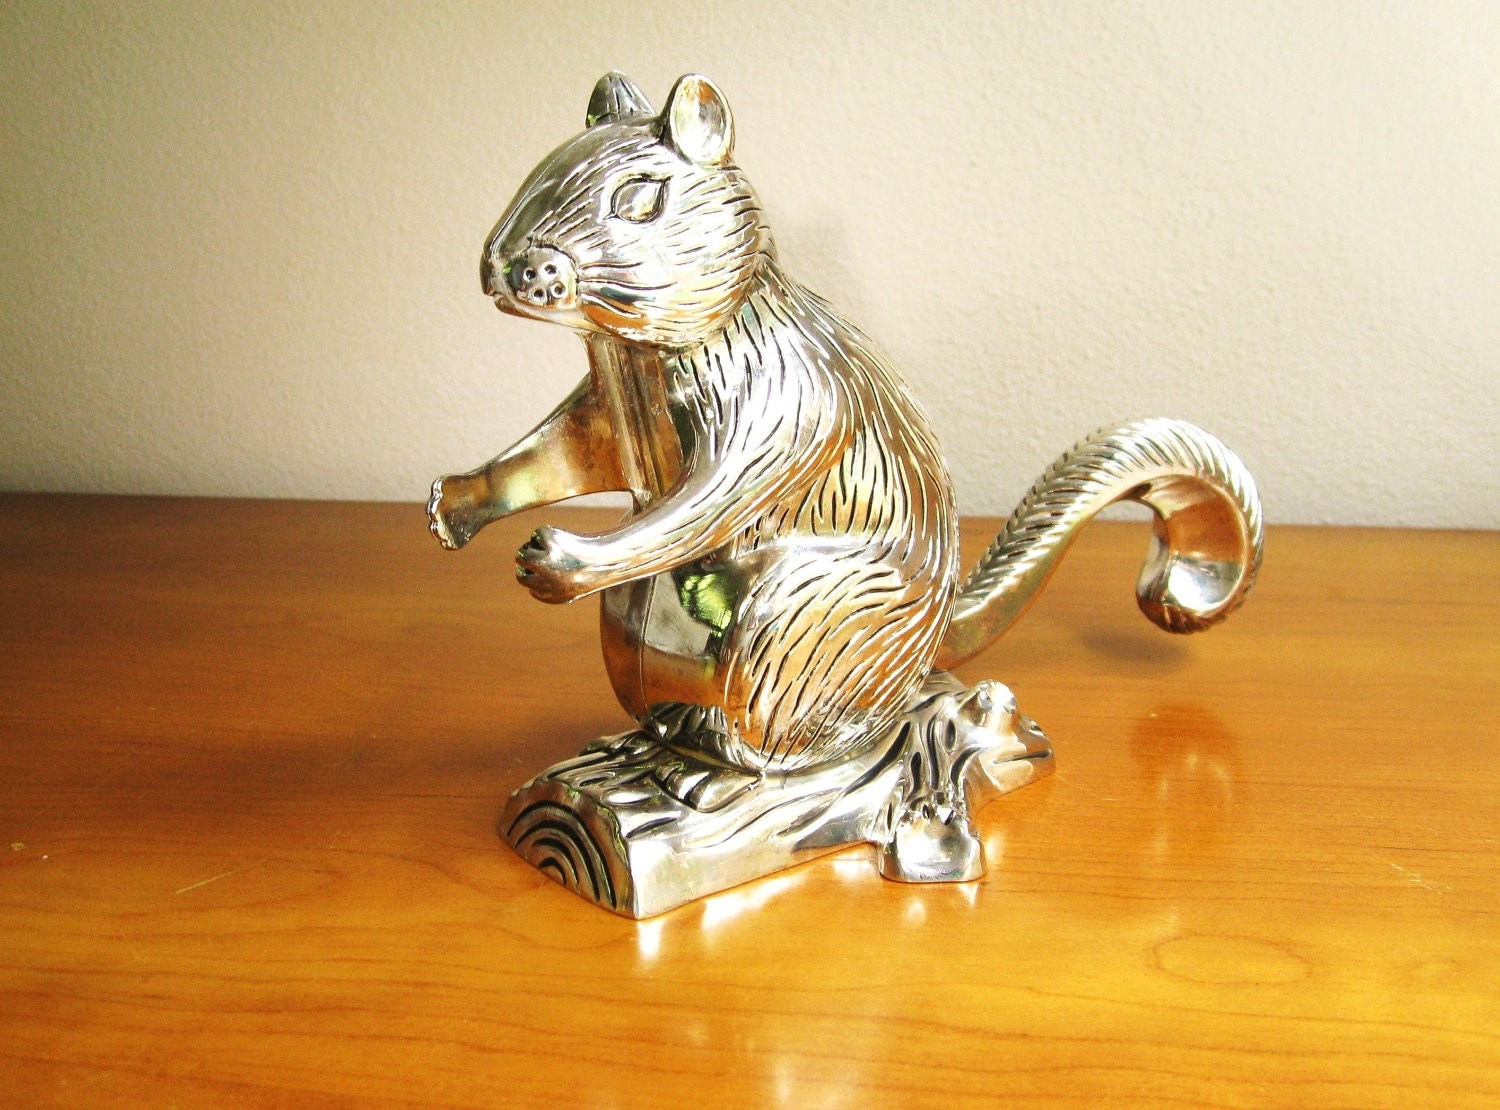 Vintage Godinger Squirrel Nutcracker By Dewymorningvintage On Etsy